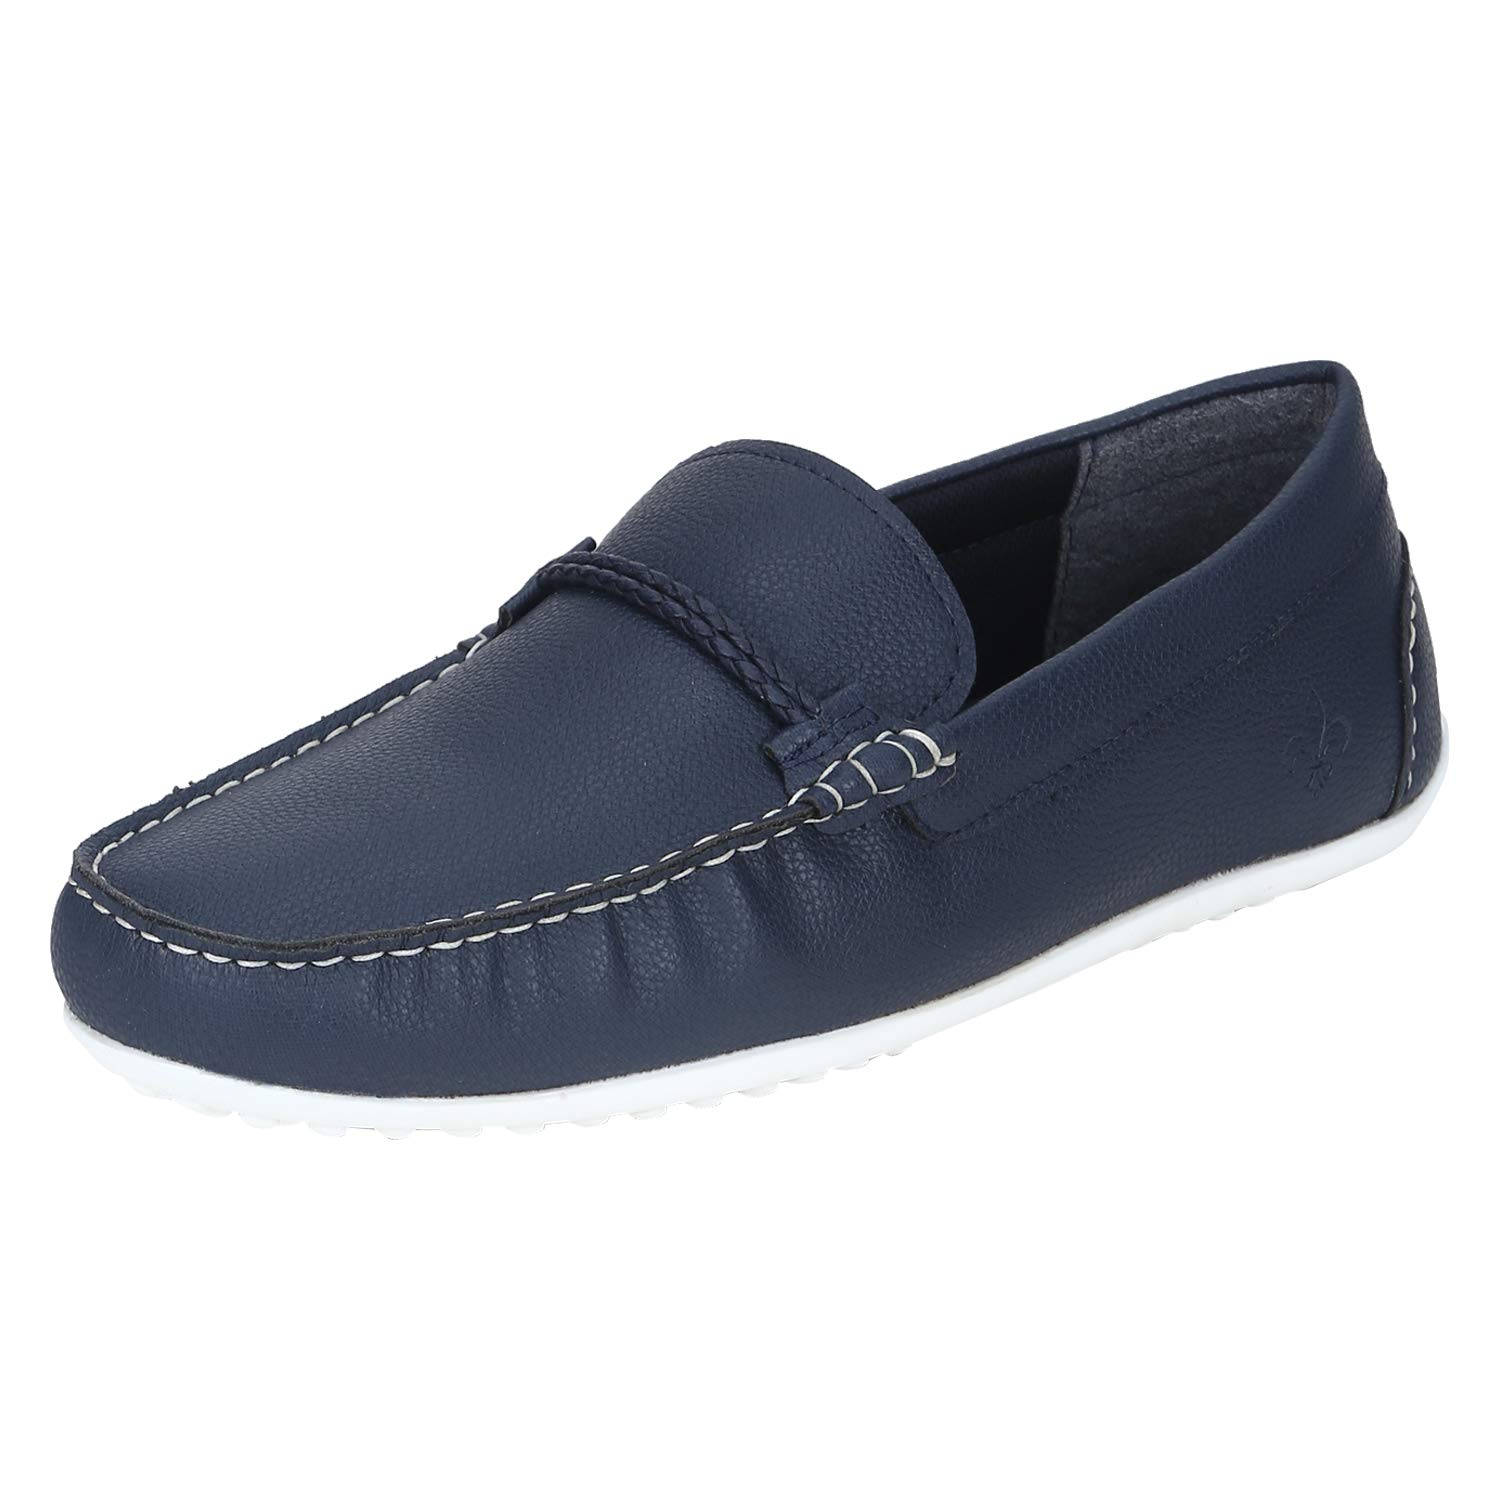 Red Tape Bond Street Men's Loafers